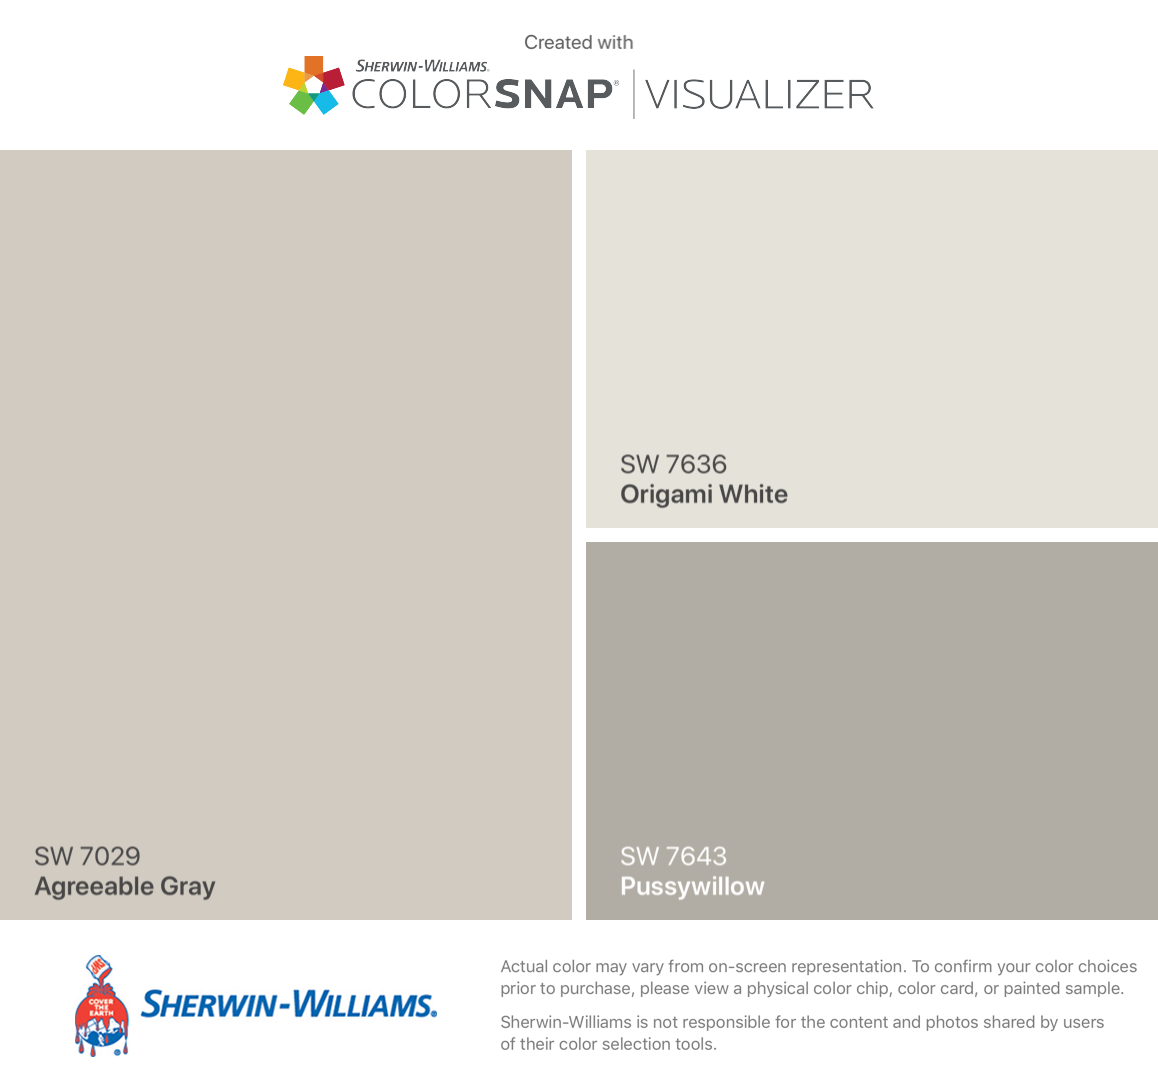 I found these colors with ColorSnap® Visualizer for iPhone by Sherwin-Williams: Agreeable Gray (SW 7029), Origami White (SW 7636), Pussywillow (SW 7643). #sherwinwilliamsagreeablegray I found these colors with ColorSnap® Visualizer for iPhone by Sherwin-Williams: Agreeable Gray (SW 7029), Origami White (SW 7636), Pussywillow (SW 7643). #sherwinwilliamsagreeablegray